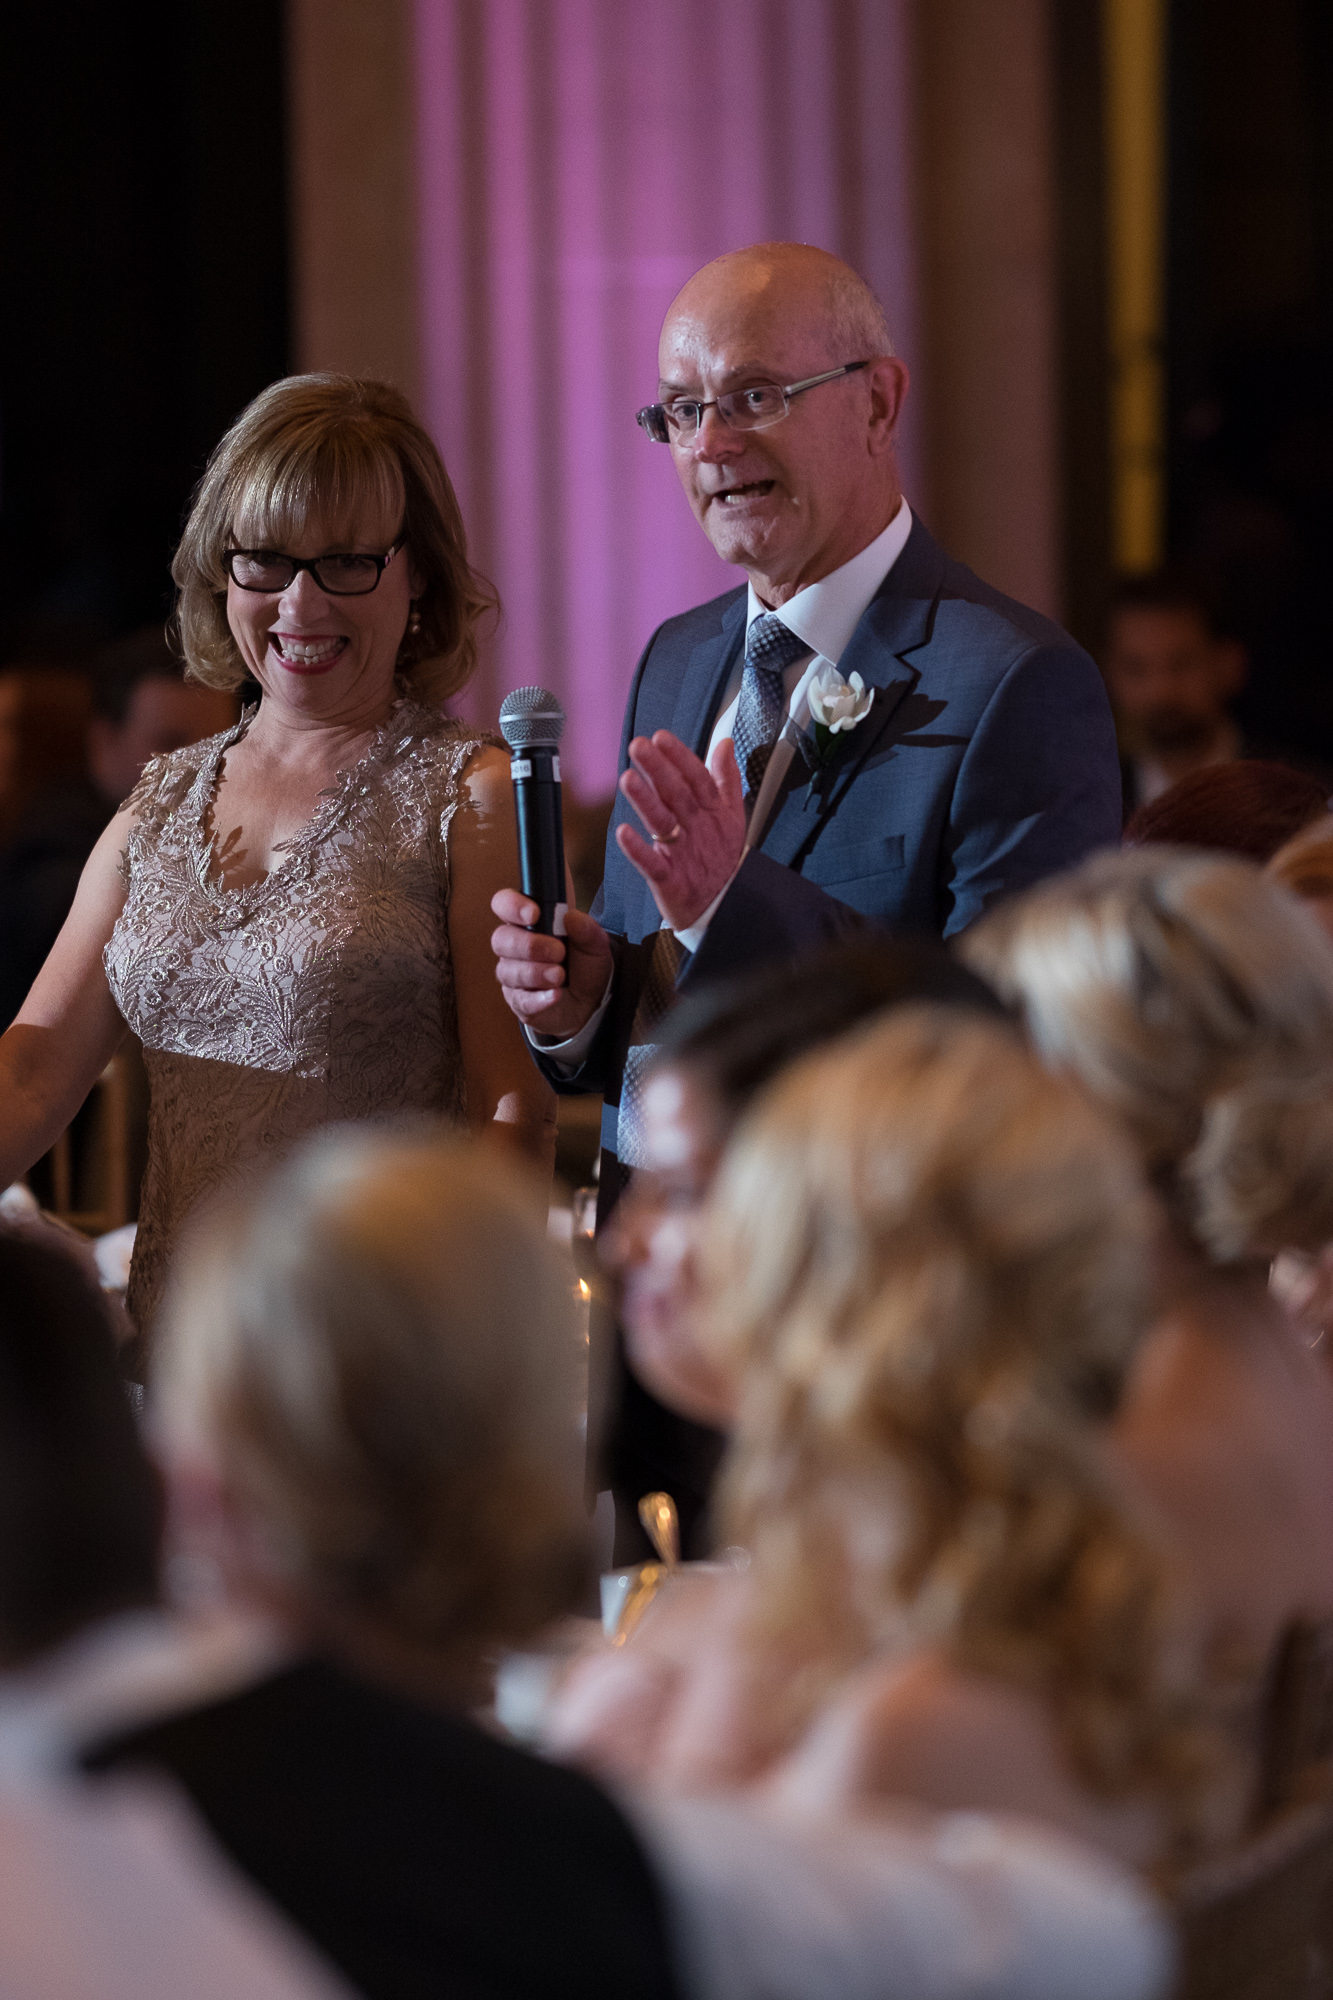 The parents of the bride give the newlywed couple a toast during their reception at One King West Hotel in Toronto.